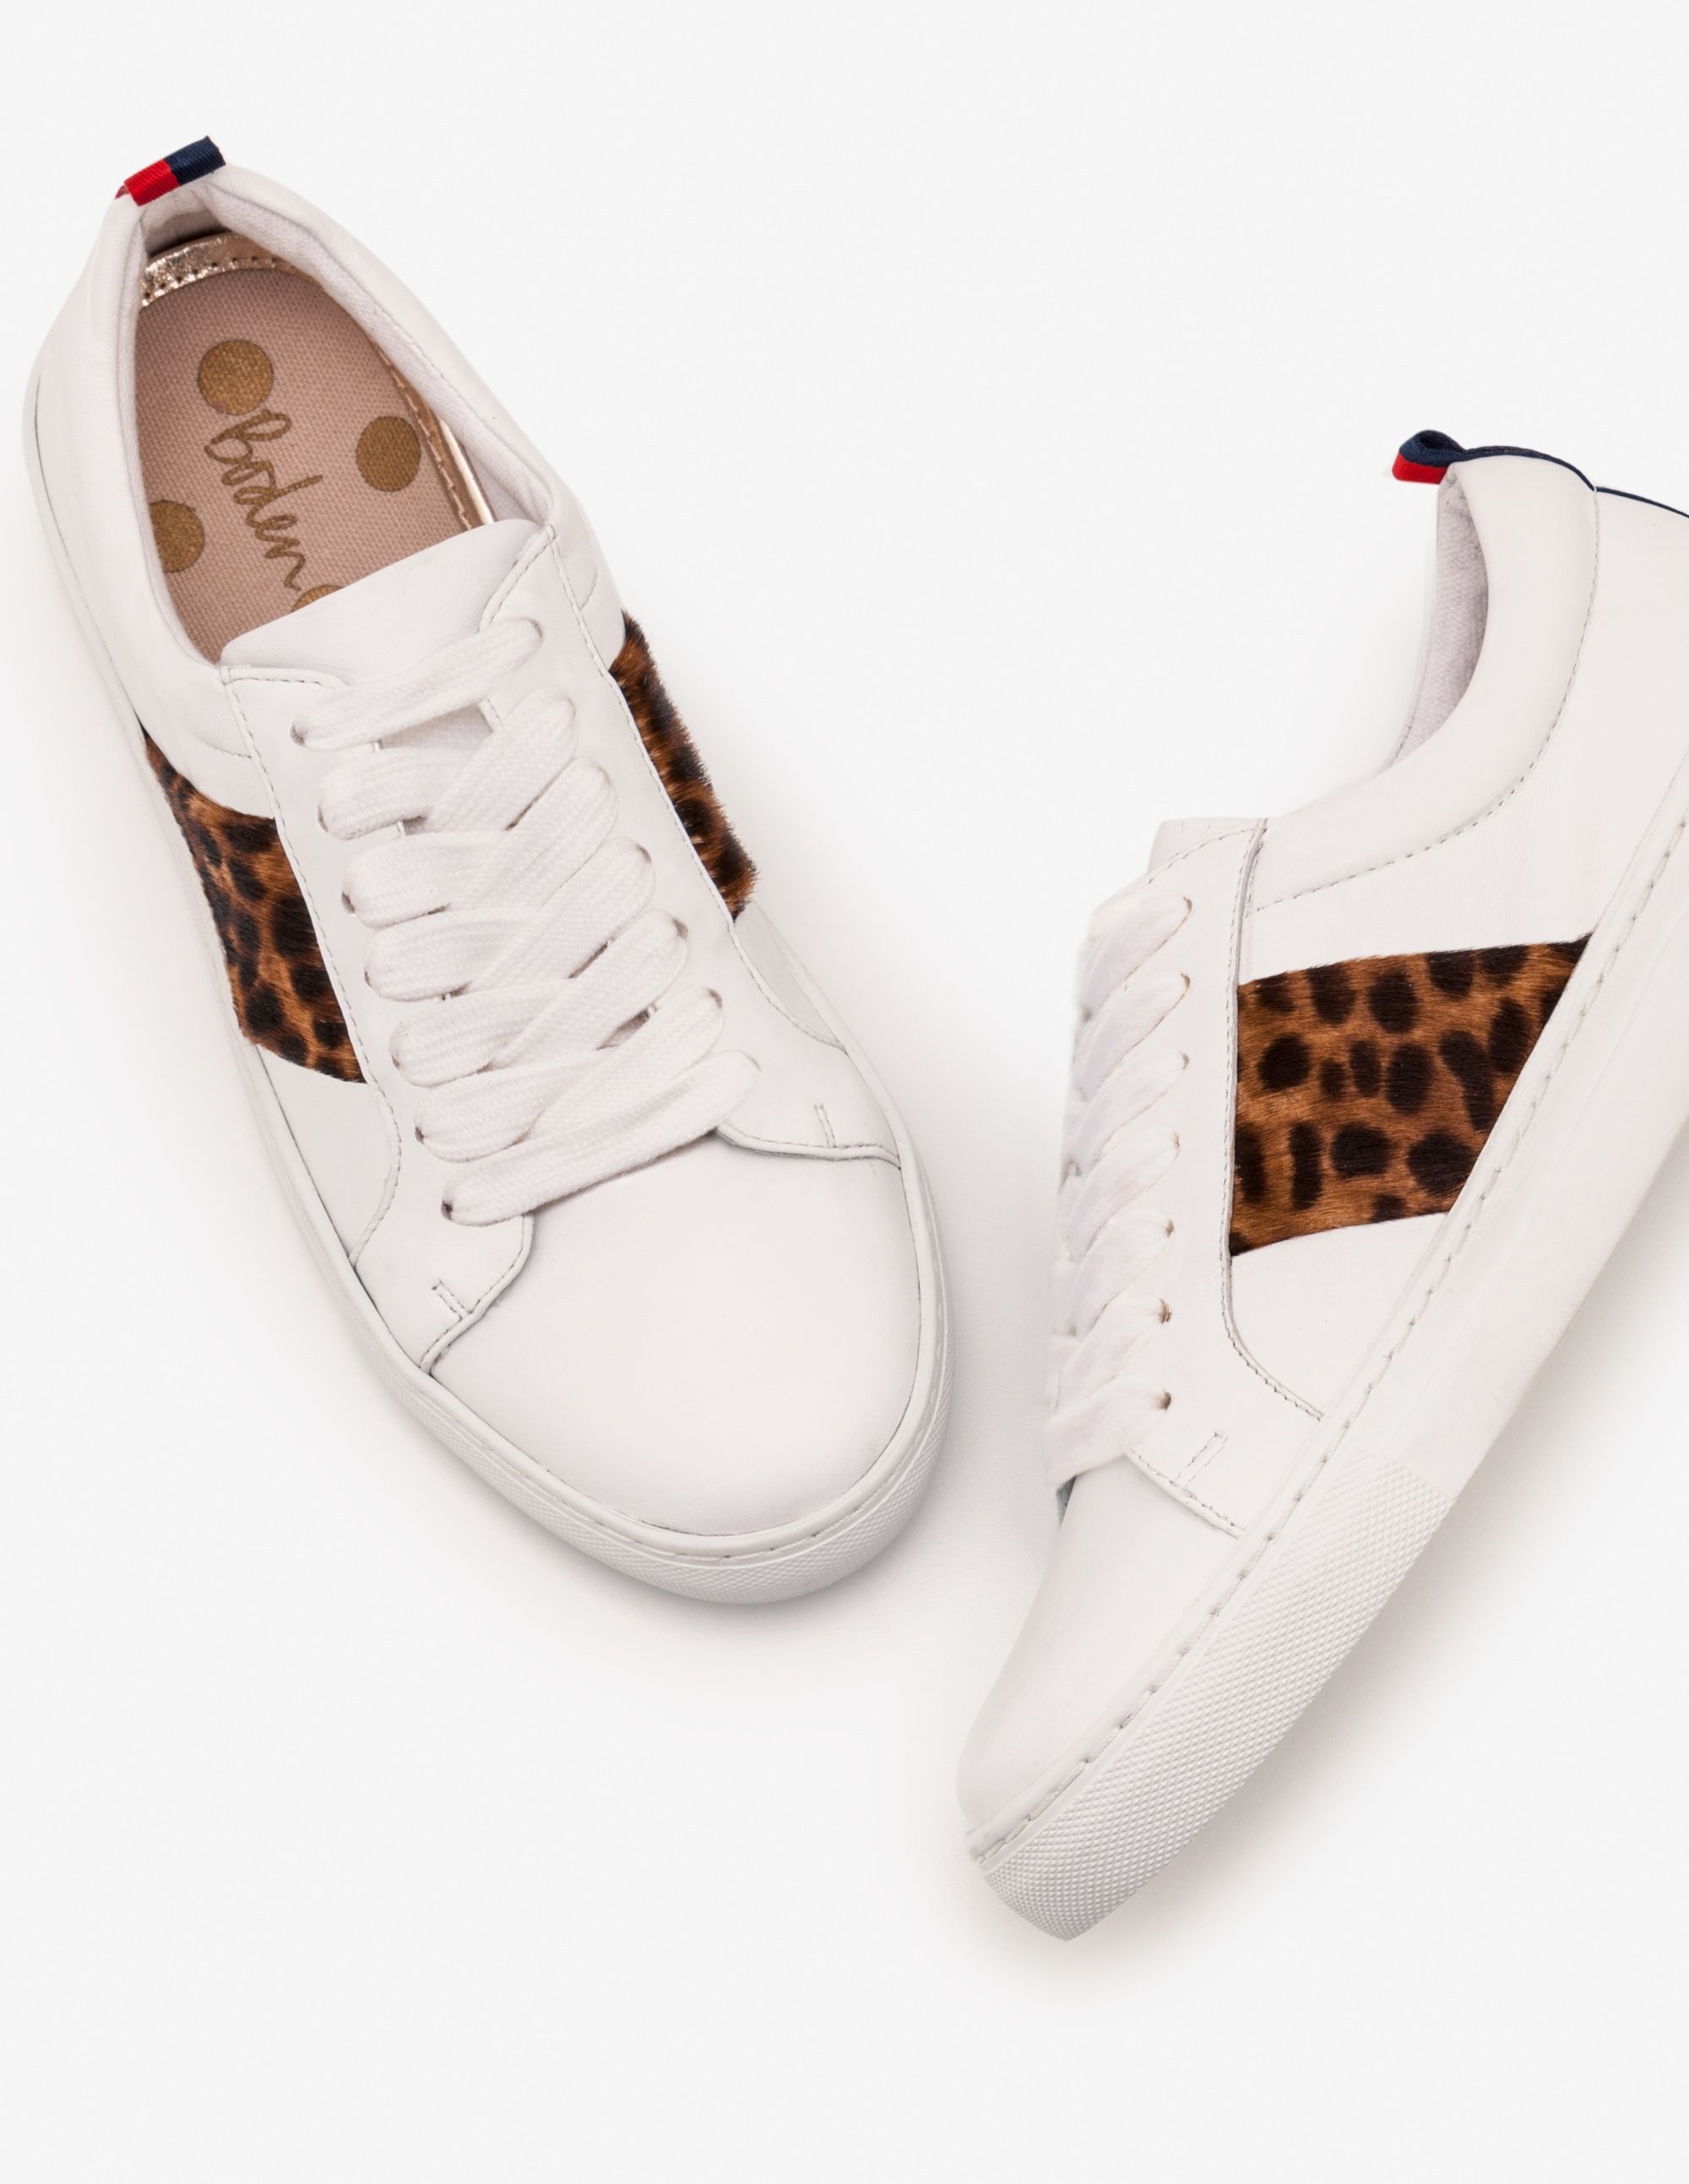 Boden Classic Trainers